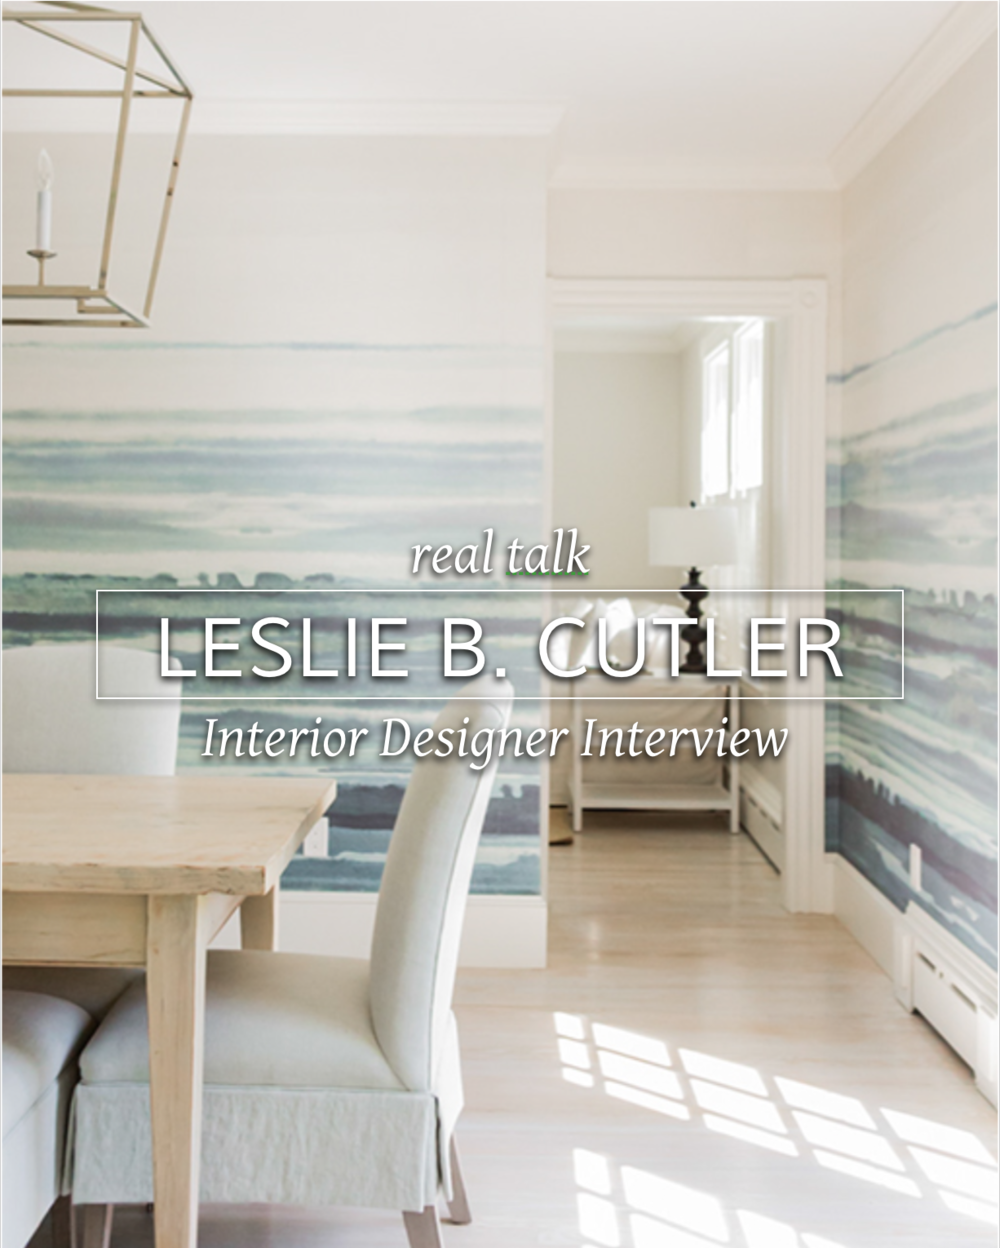 Leslie B Cutler Interior Design photo by Michael J Lee Photography #realdesigner #interiordesignbusiness #interiordesignerinterview